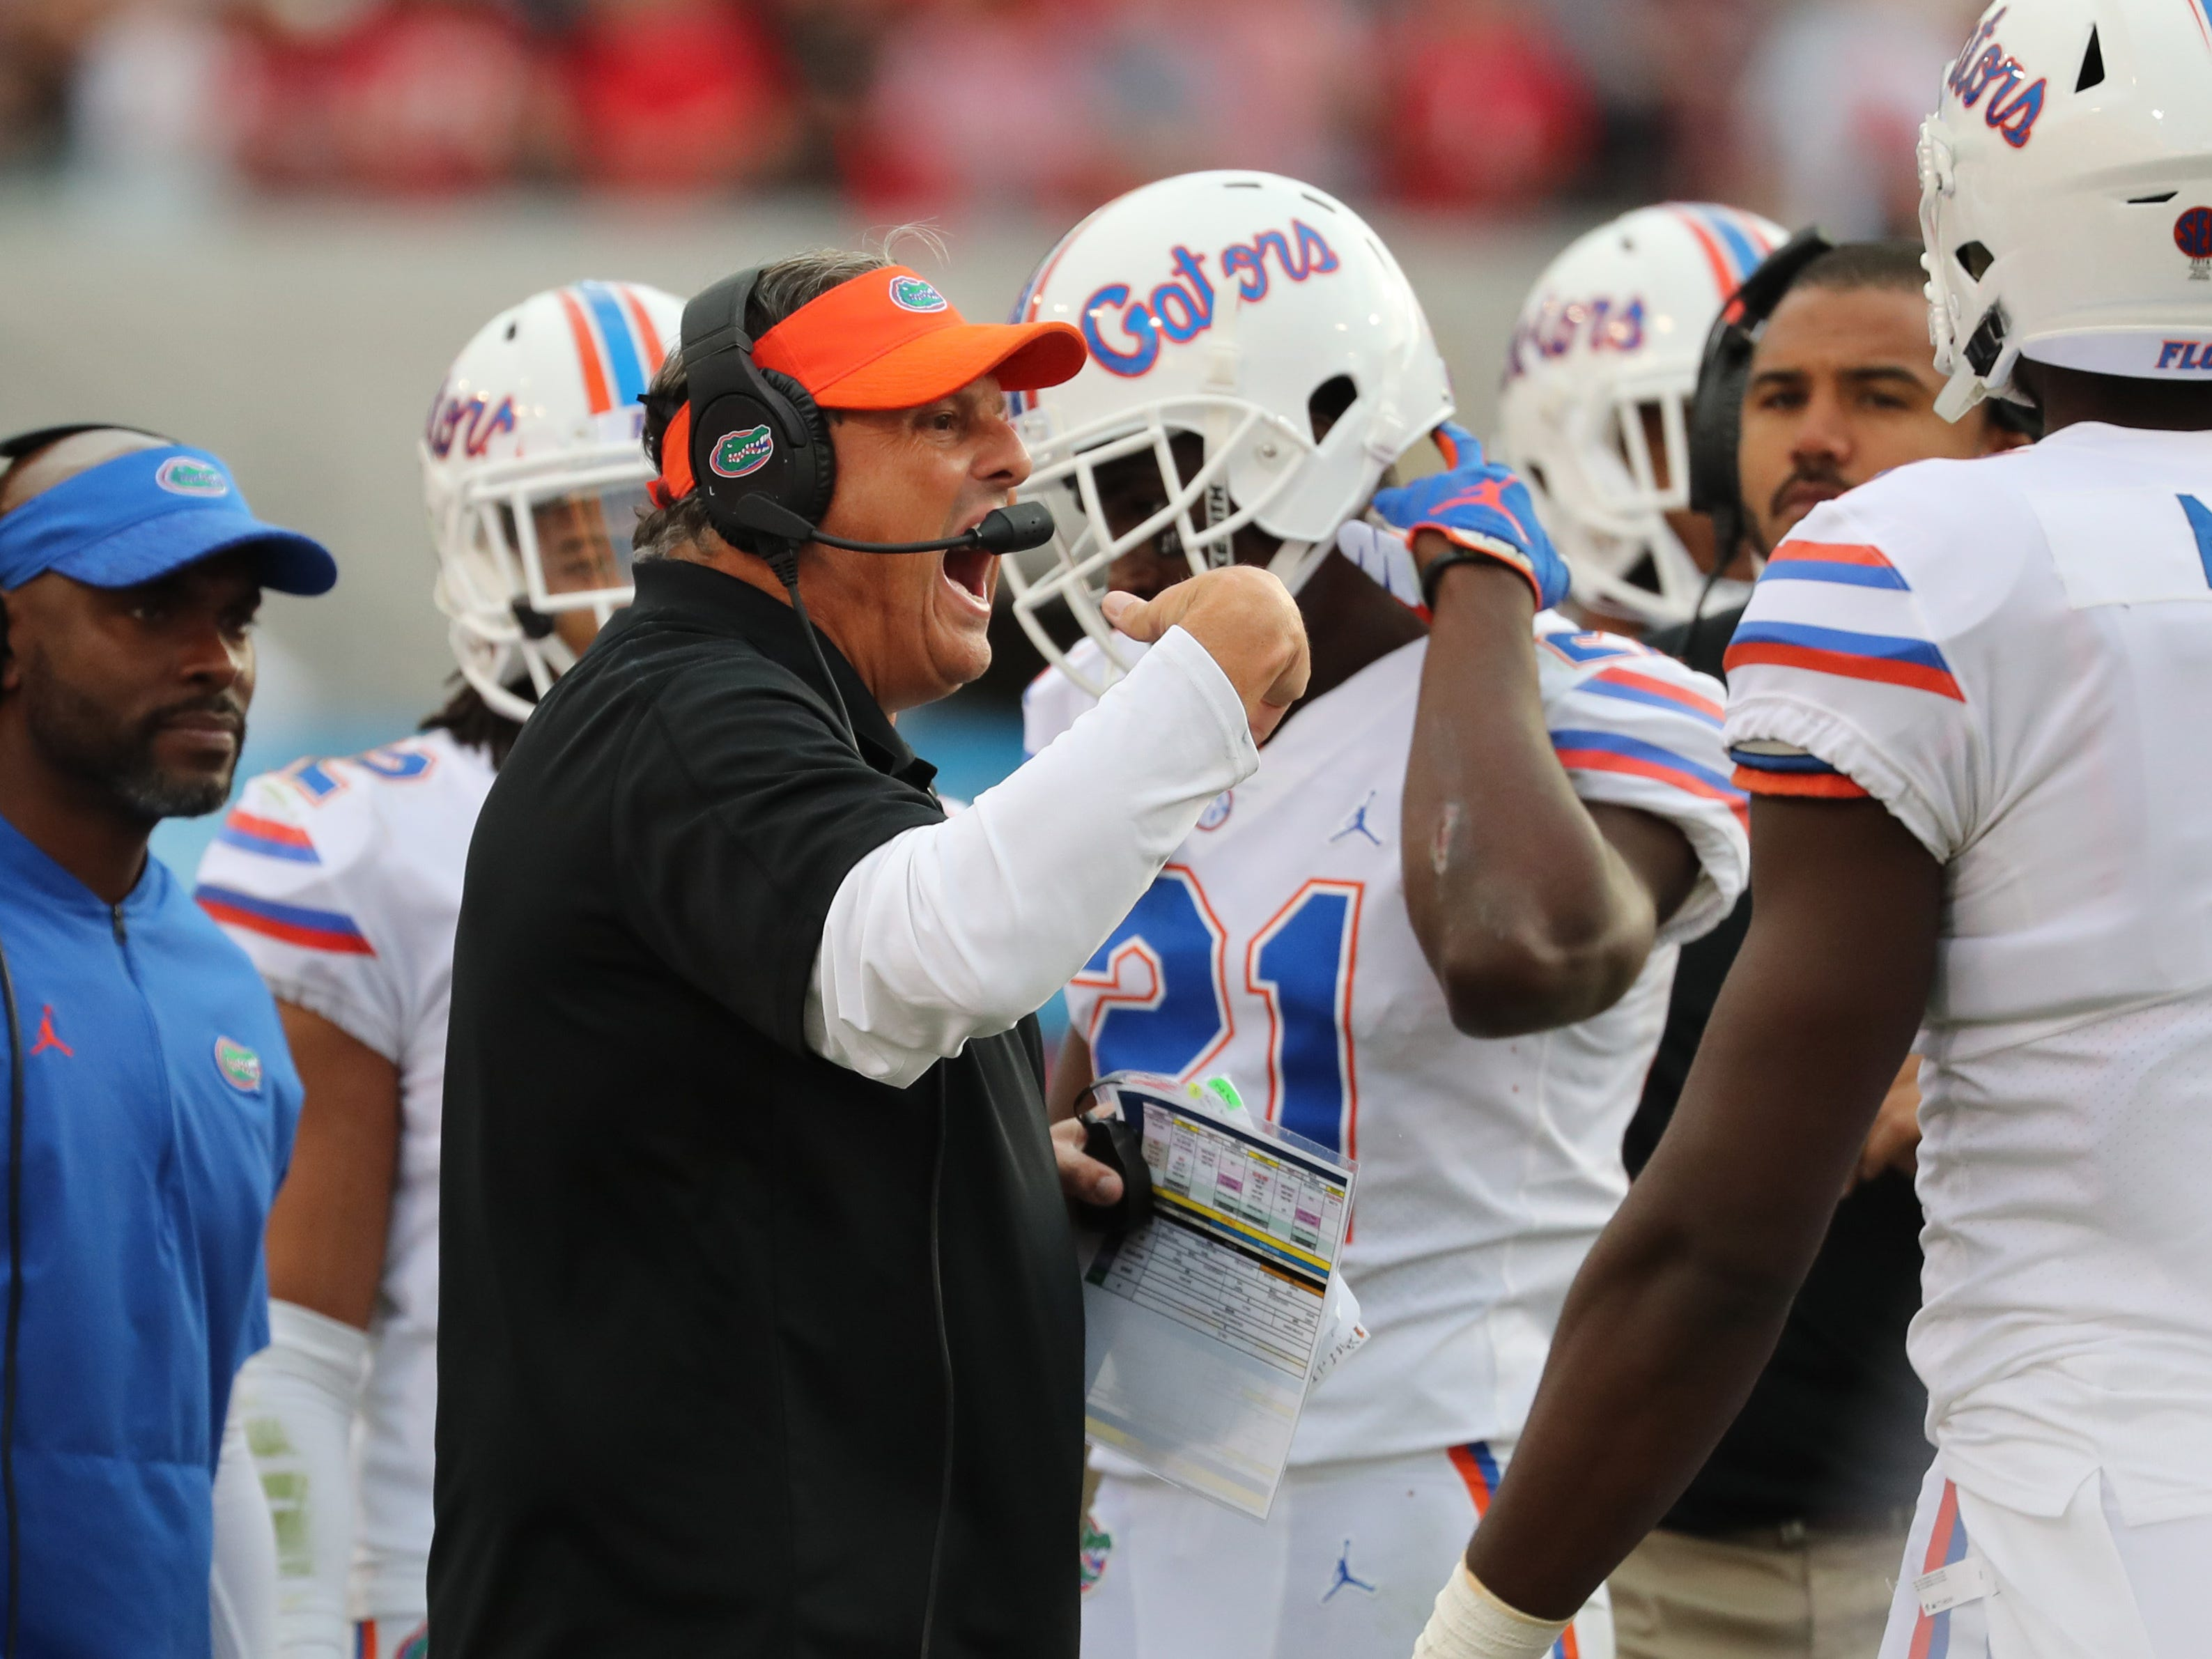 No. 9: Todd Grantham, Florida defensive coordinator: $1,401,500. A former NFL assistant, he moved with Dan Mullen from Mississippi State after last season and is now at his third SEC school this decade. He also worked at Georgia from 2010 through 2013. Before Mississippi State, he was at Louisville, which paid him $1.3 million in 2015 and 2016.